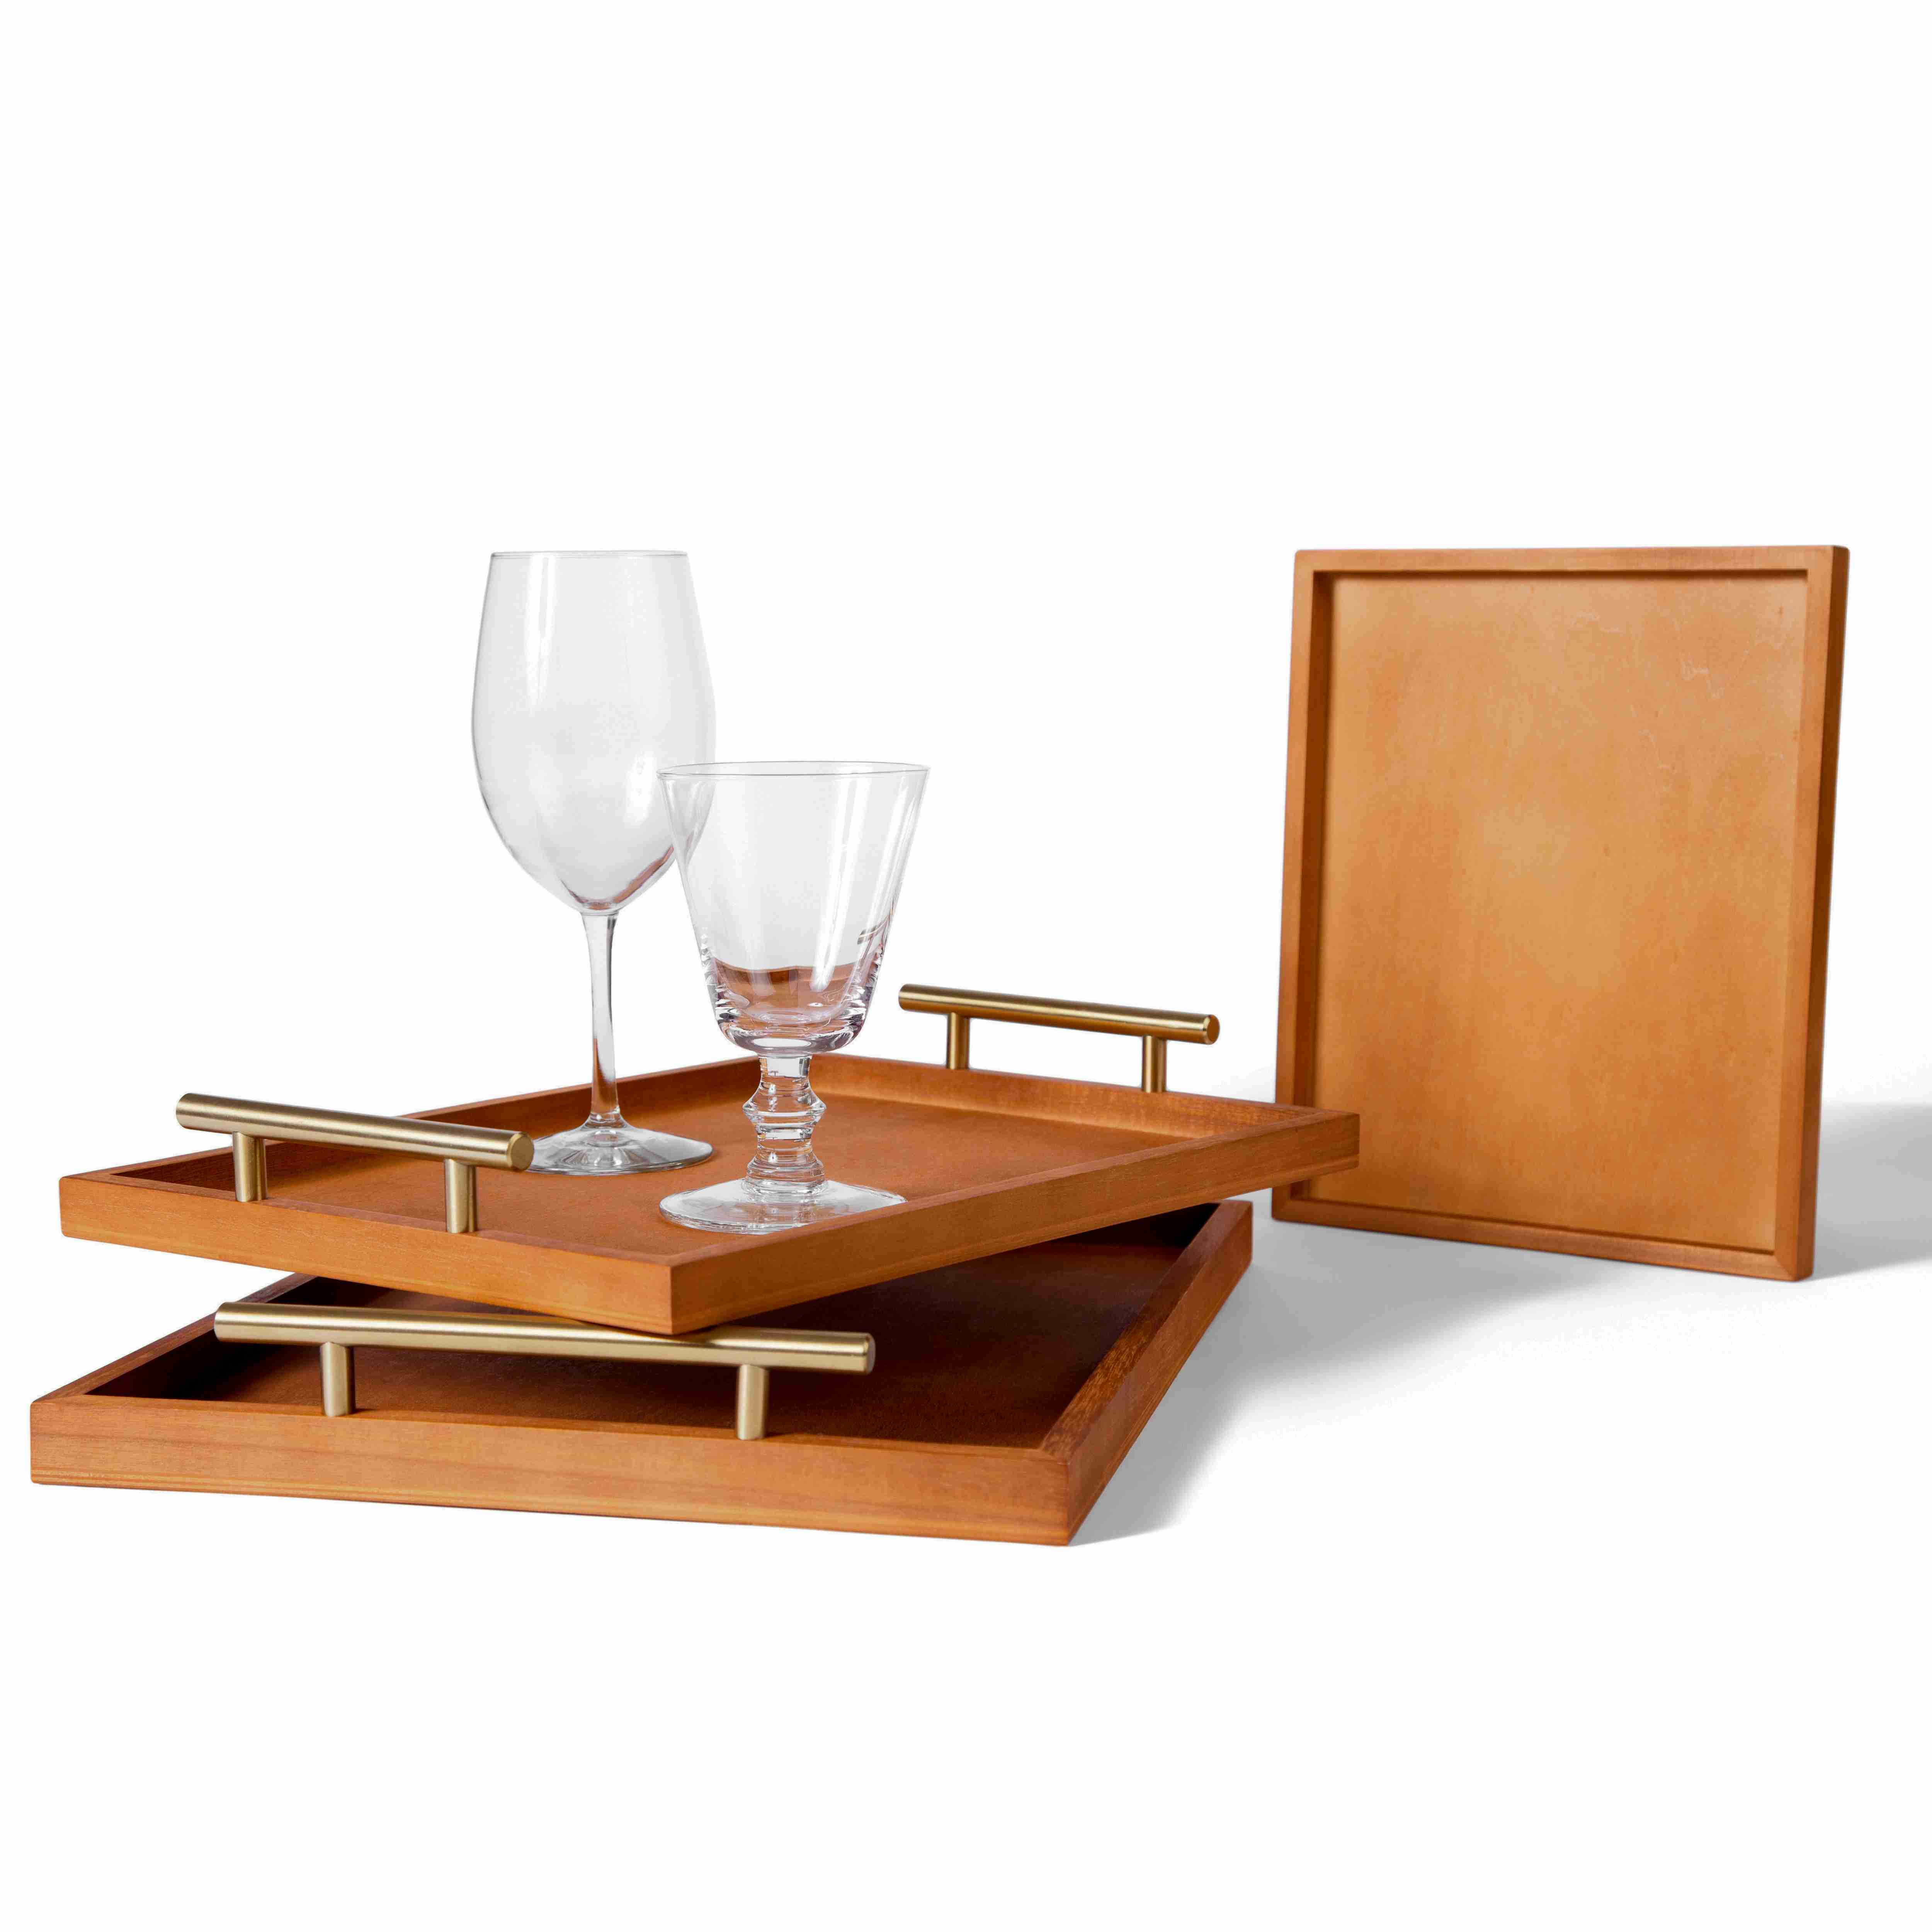 wood-trays-with-handles with cash back rebate